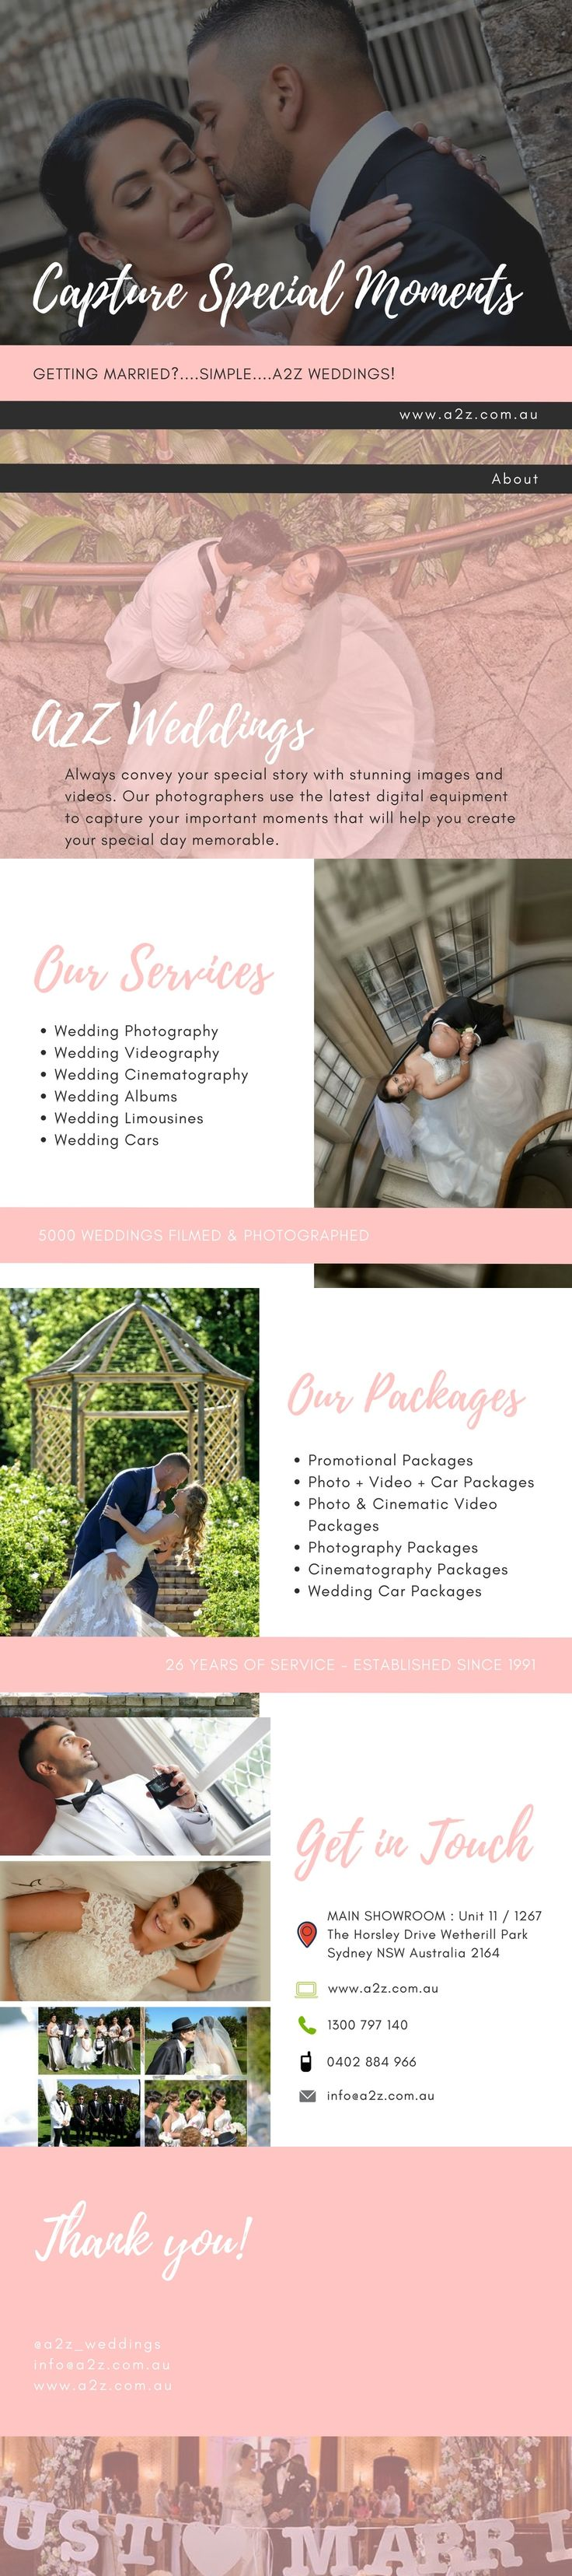 Illuminar Photography Films Is Studio Situated In Sydney Produces Top Quality And Standard Wedding Videography Contact Us Now Fo